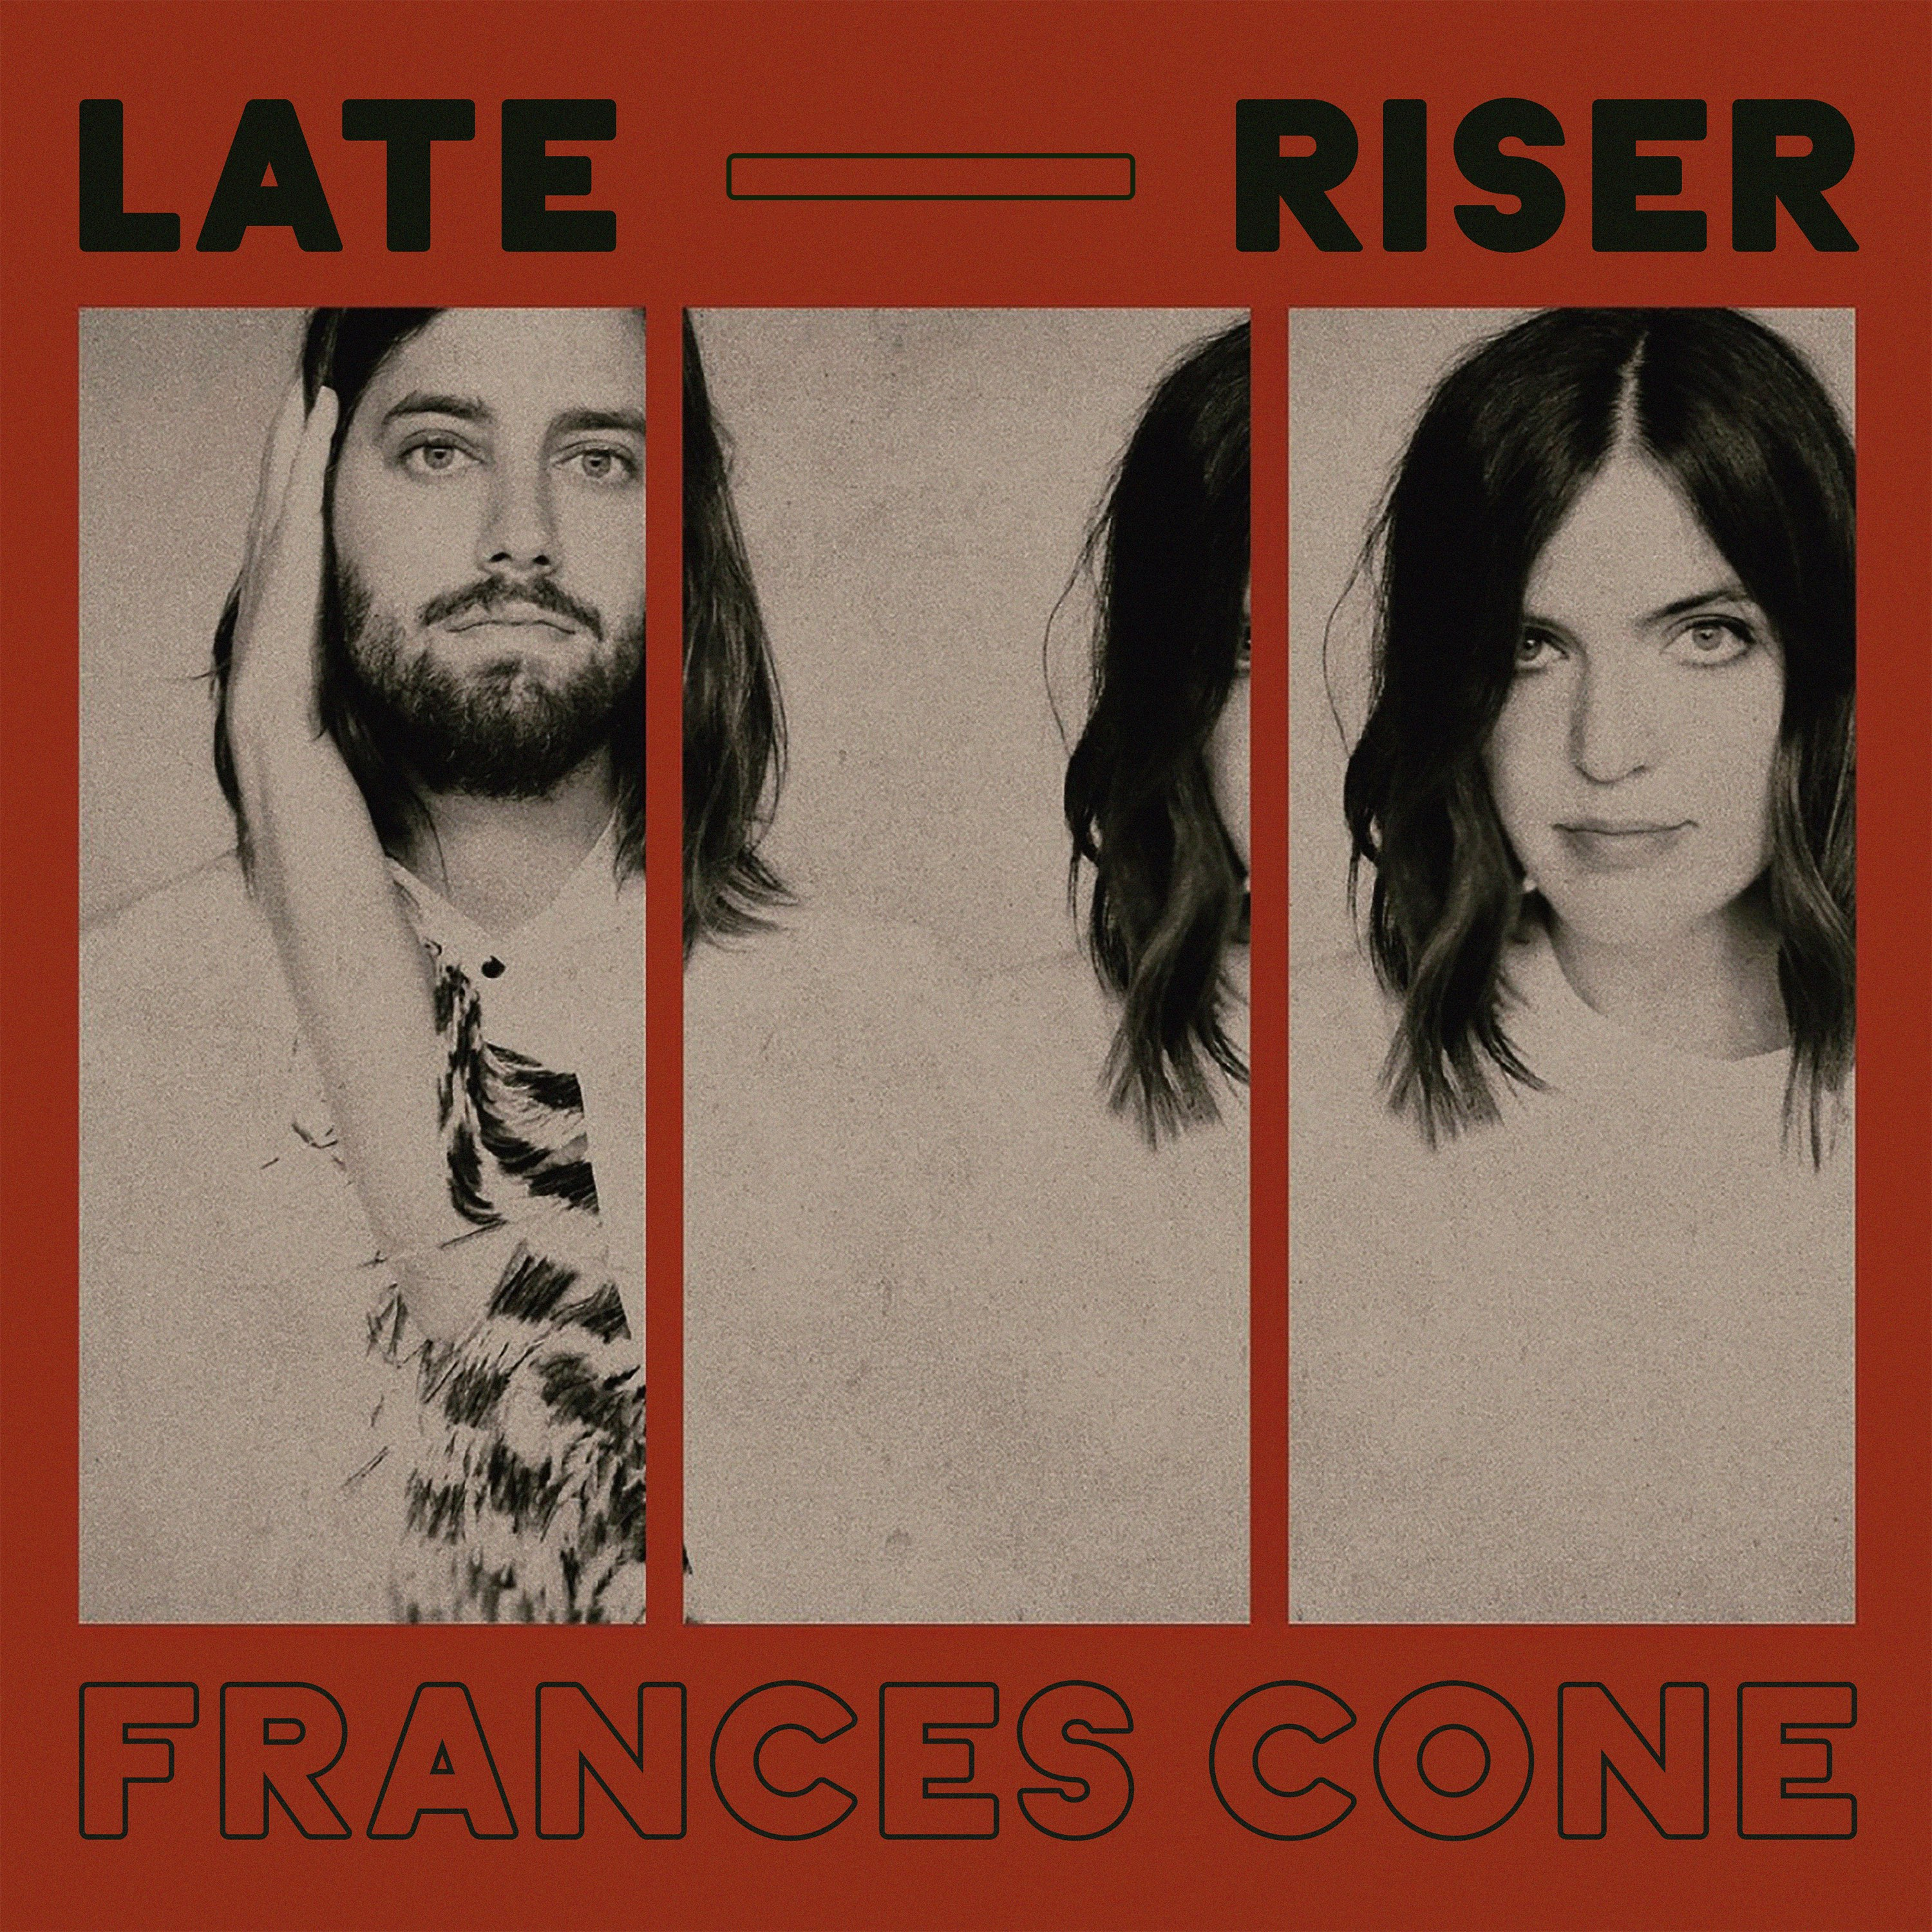 frances cone late riser album cover artwork track by track